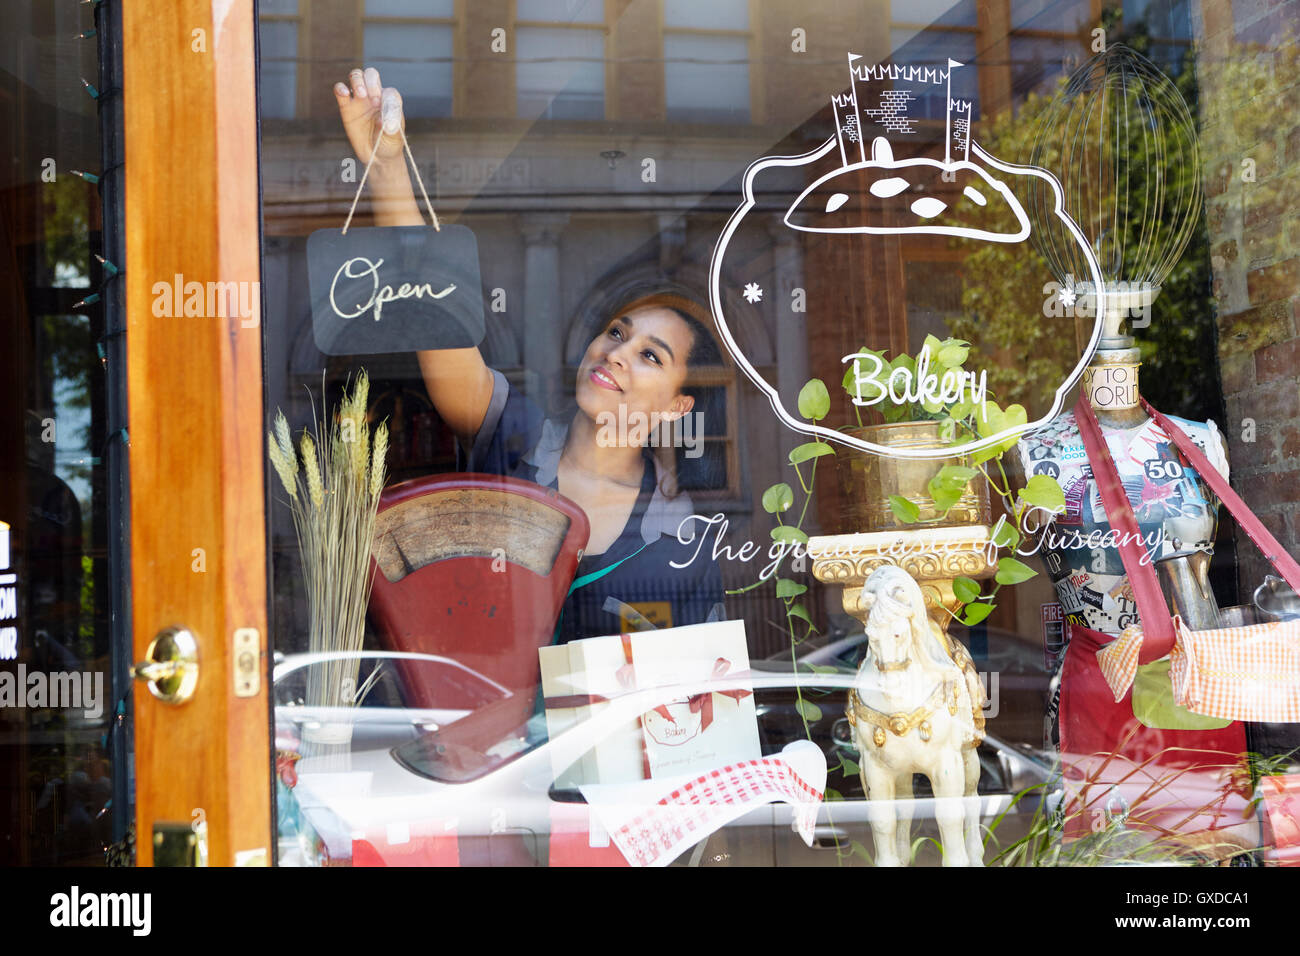 Female worker in bakery, turning sign to open - Stock Image